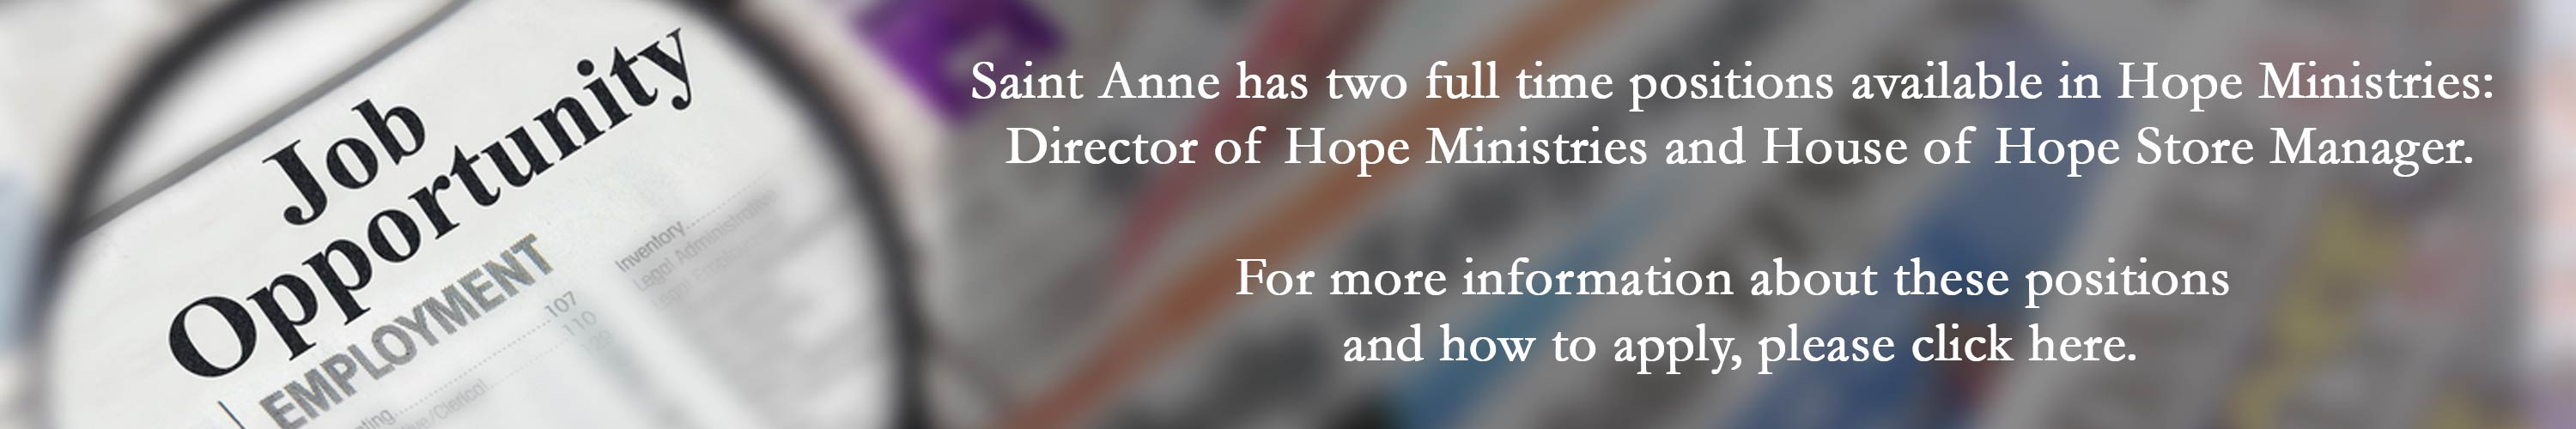 hope-ministry-job-opportunities